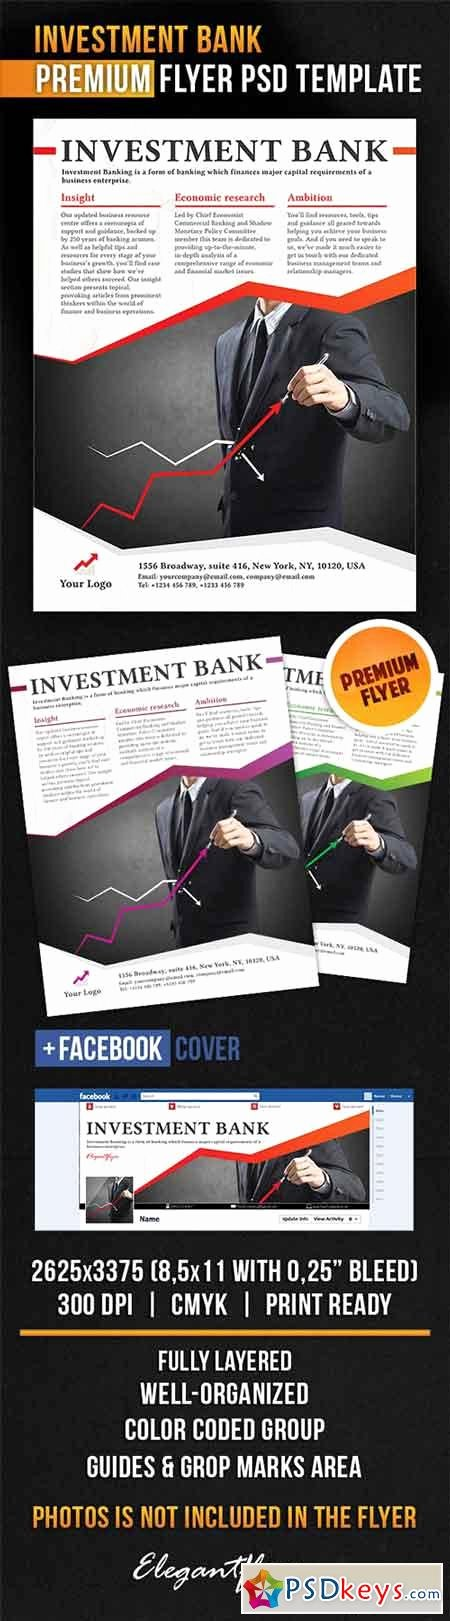 Facebook Ad Template Psd Awesome Investment Bank Flyer Psd Template Cover Free